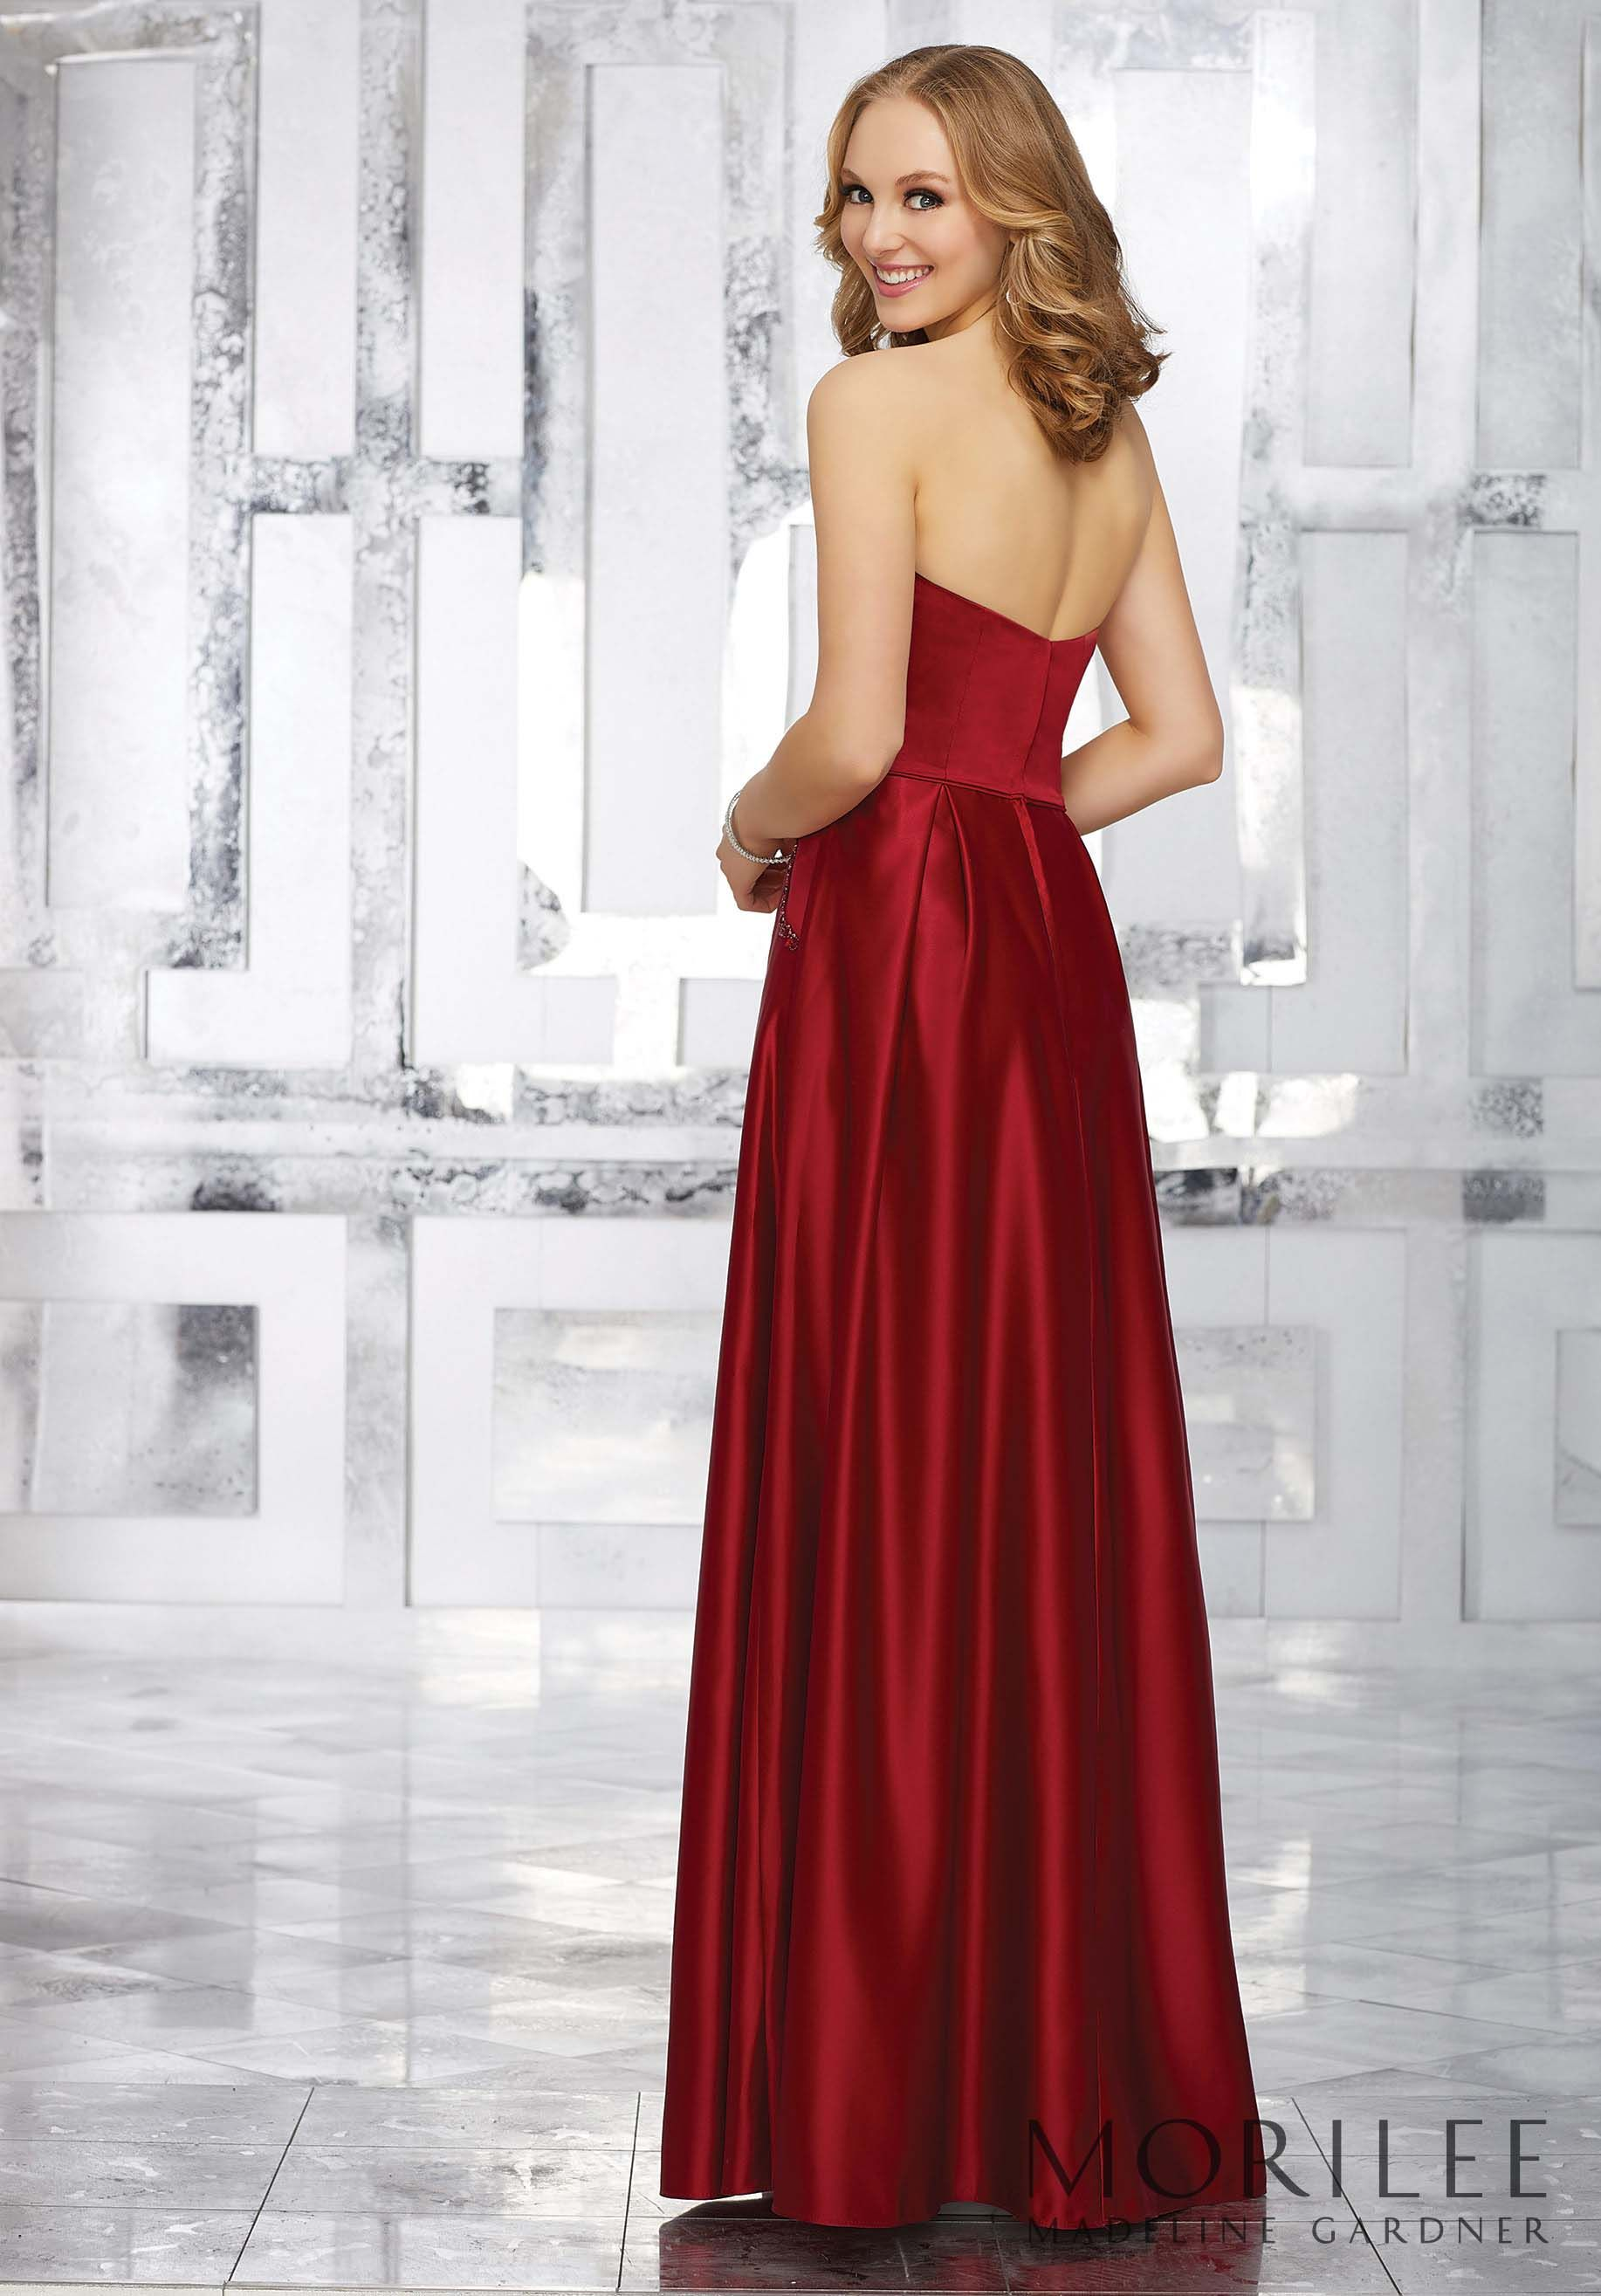 Morilee madeline gardner style 21548 red sleek satin strapless morilee madeline gardner style 21548 red sleek satin strapless bridesmaid dress featuring beaded ombrellifo Images